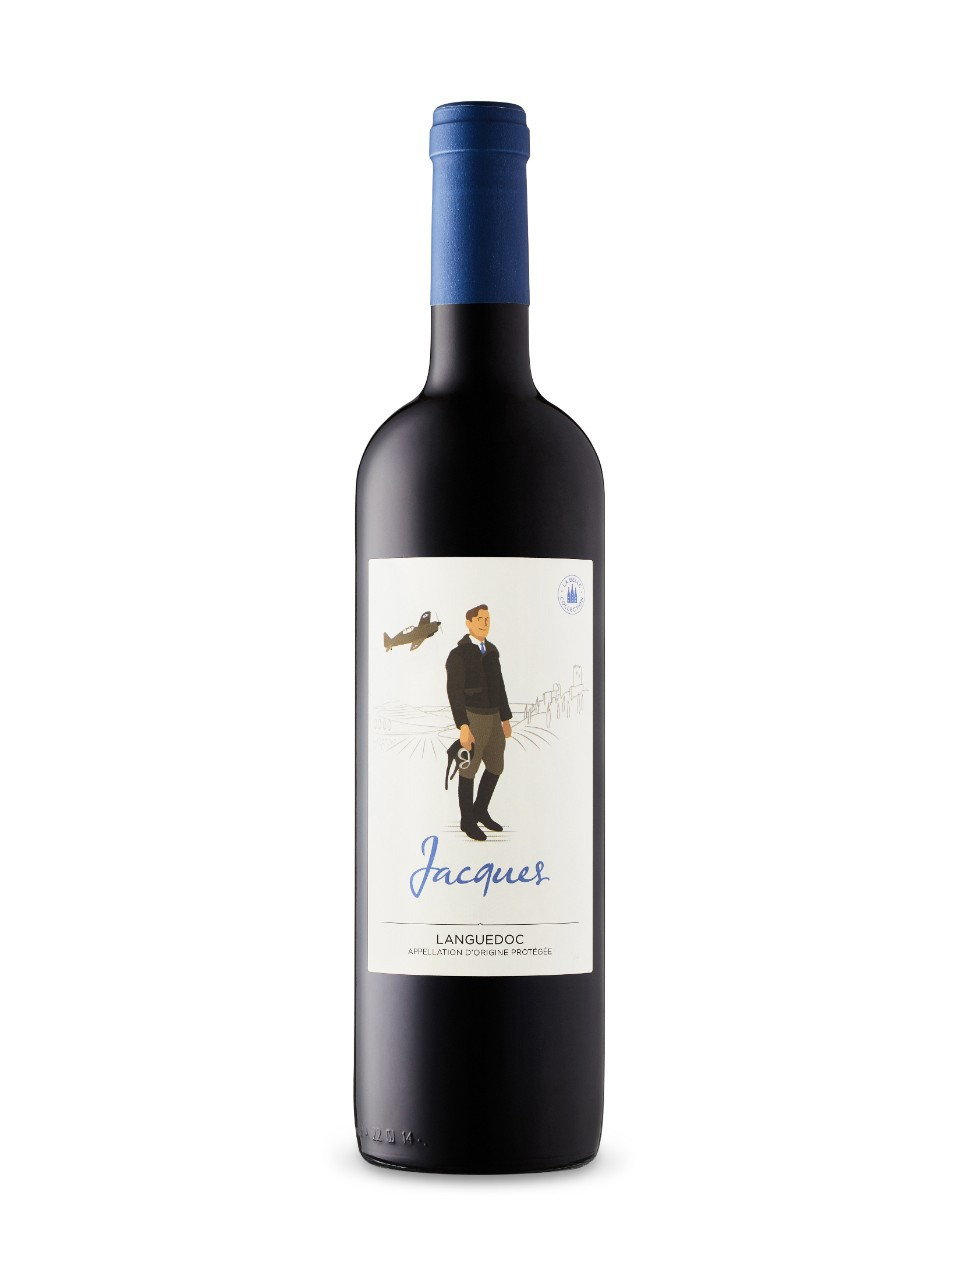 Jacques AOP Languedoc Red 2015 from LCBO